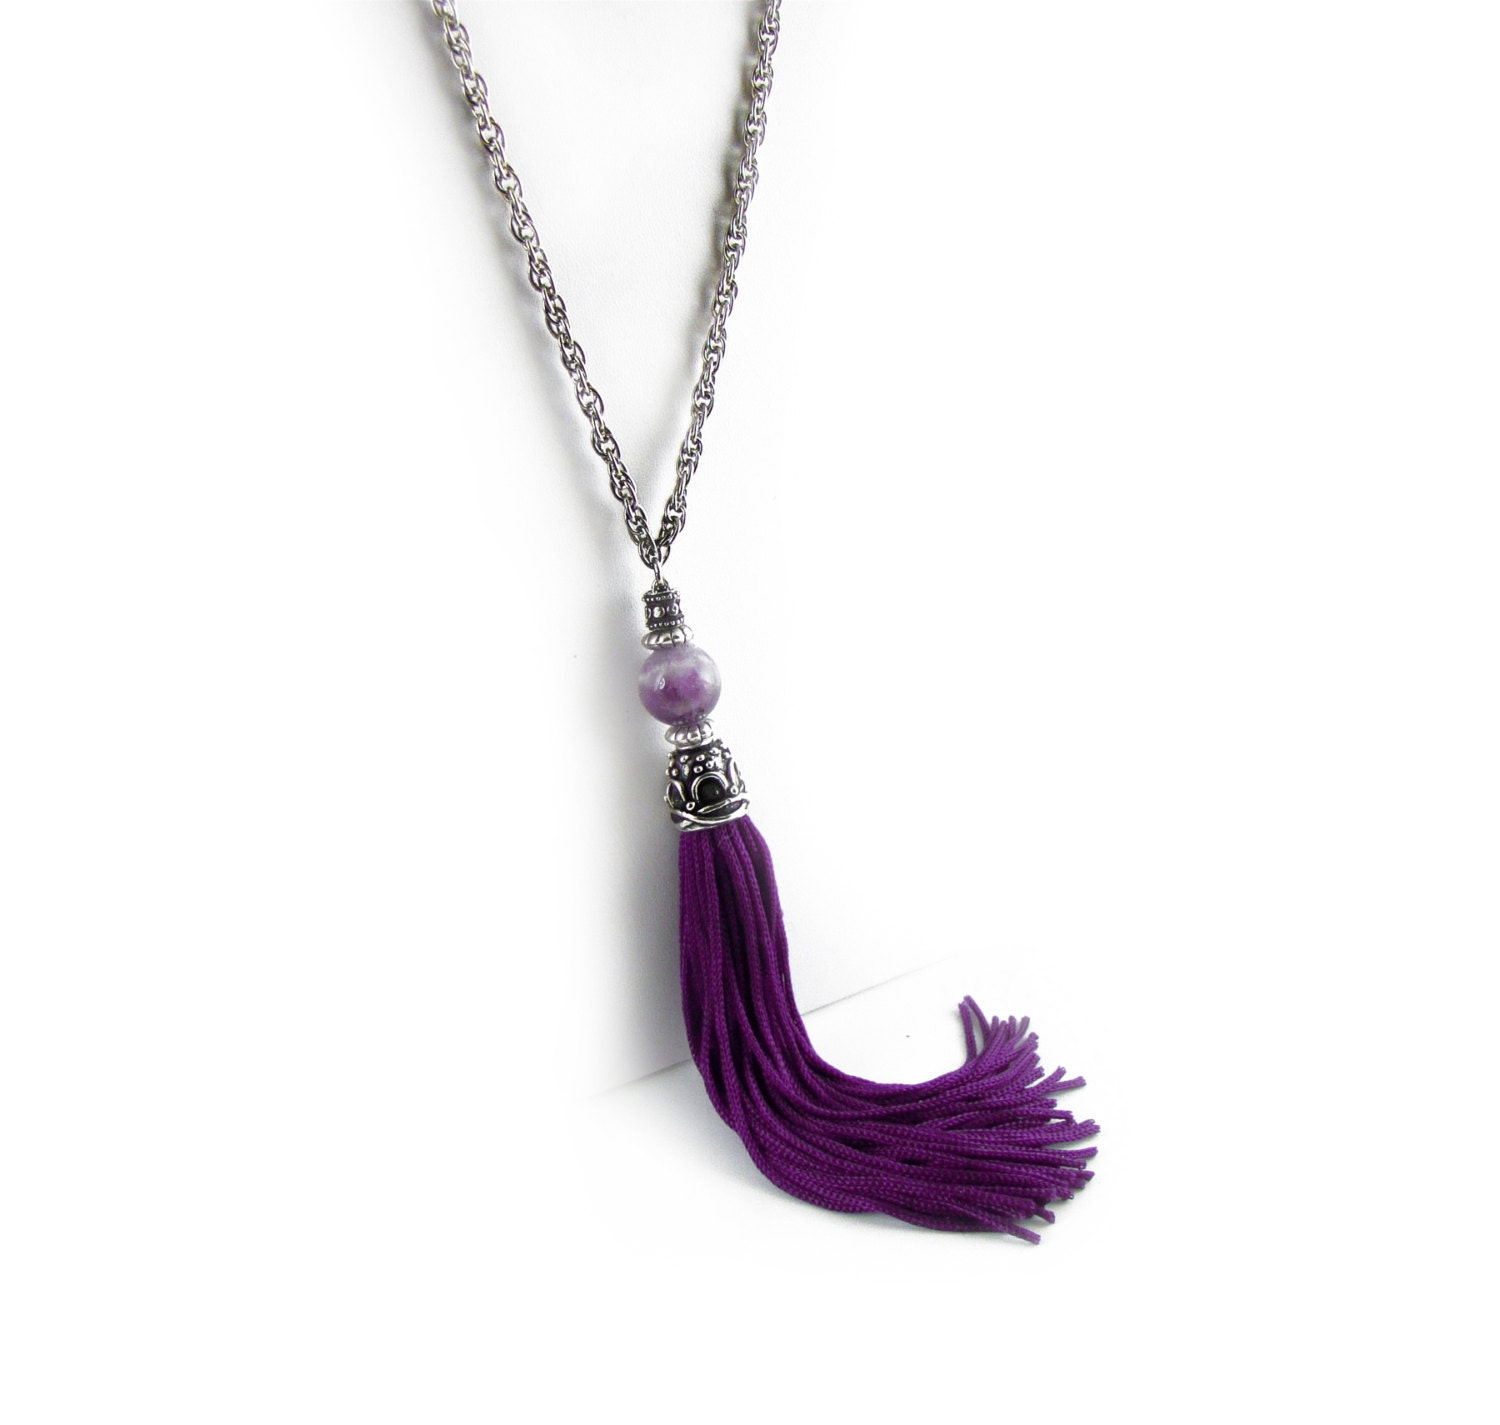 lee bay gold tao necklaces and silver shop sale holst necklace tassel glacier